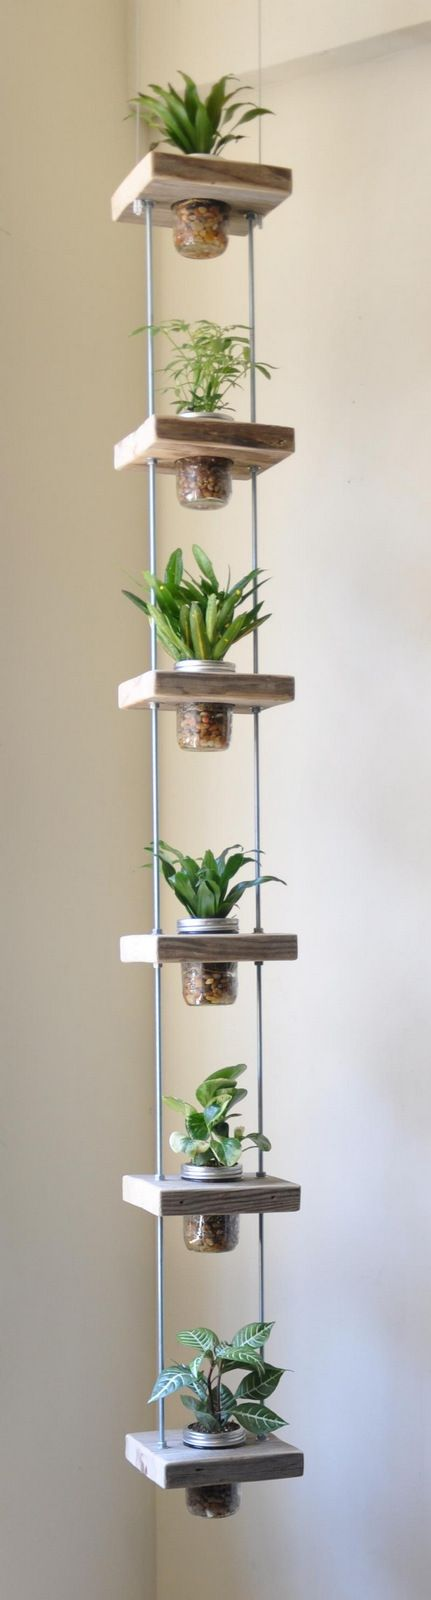 hanging mason jar vertical planter